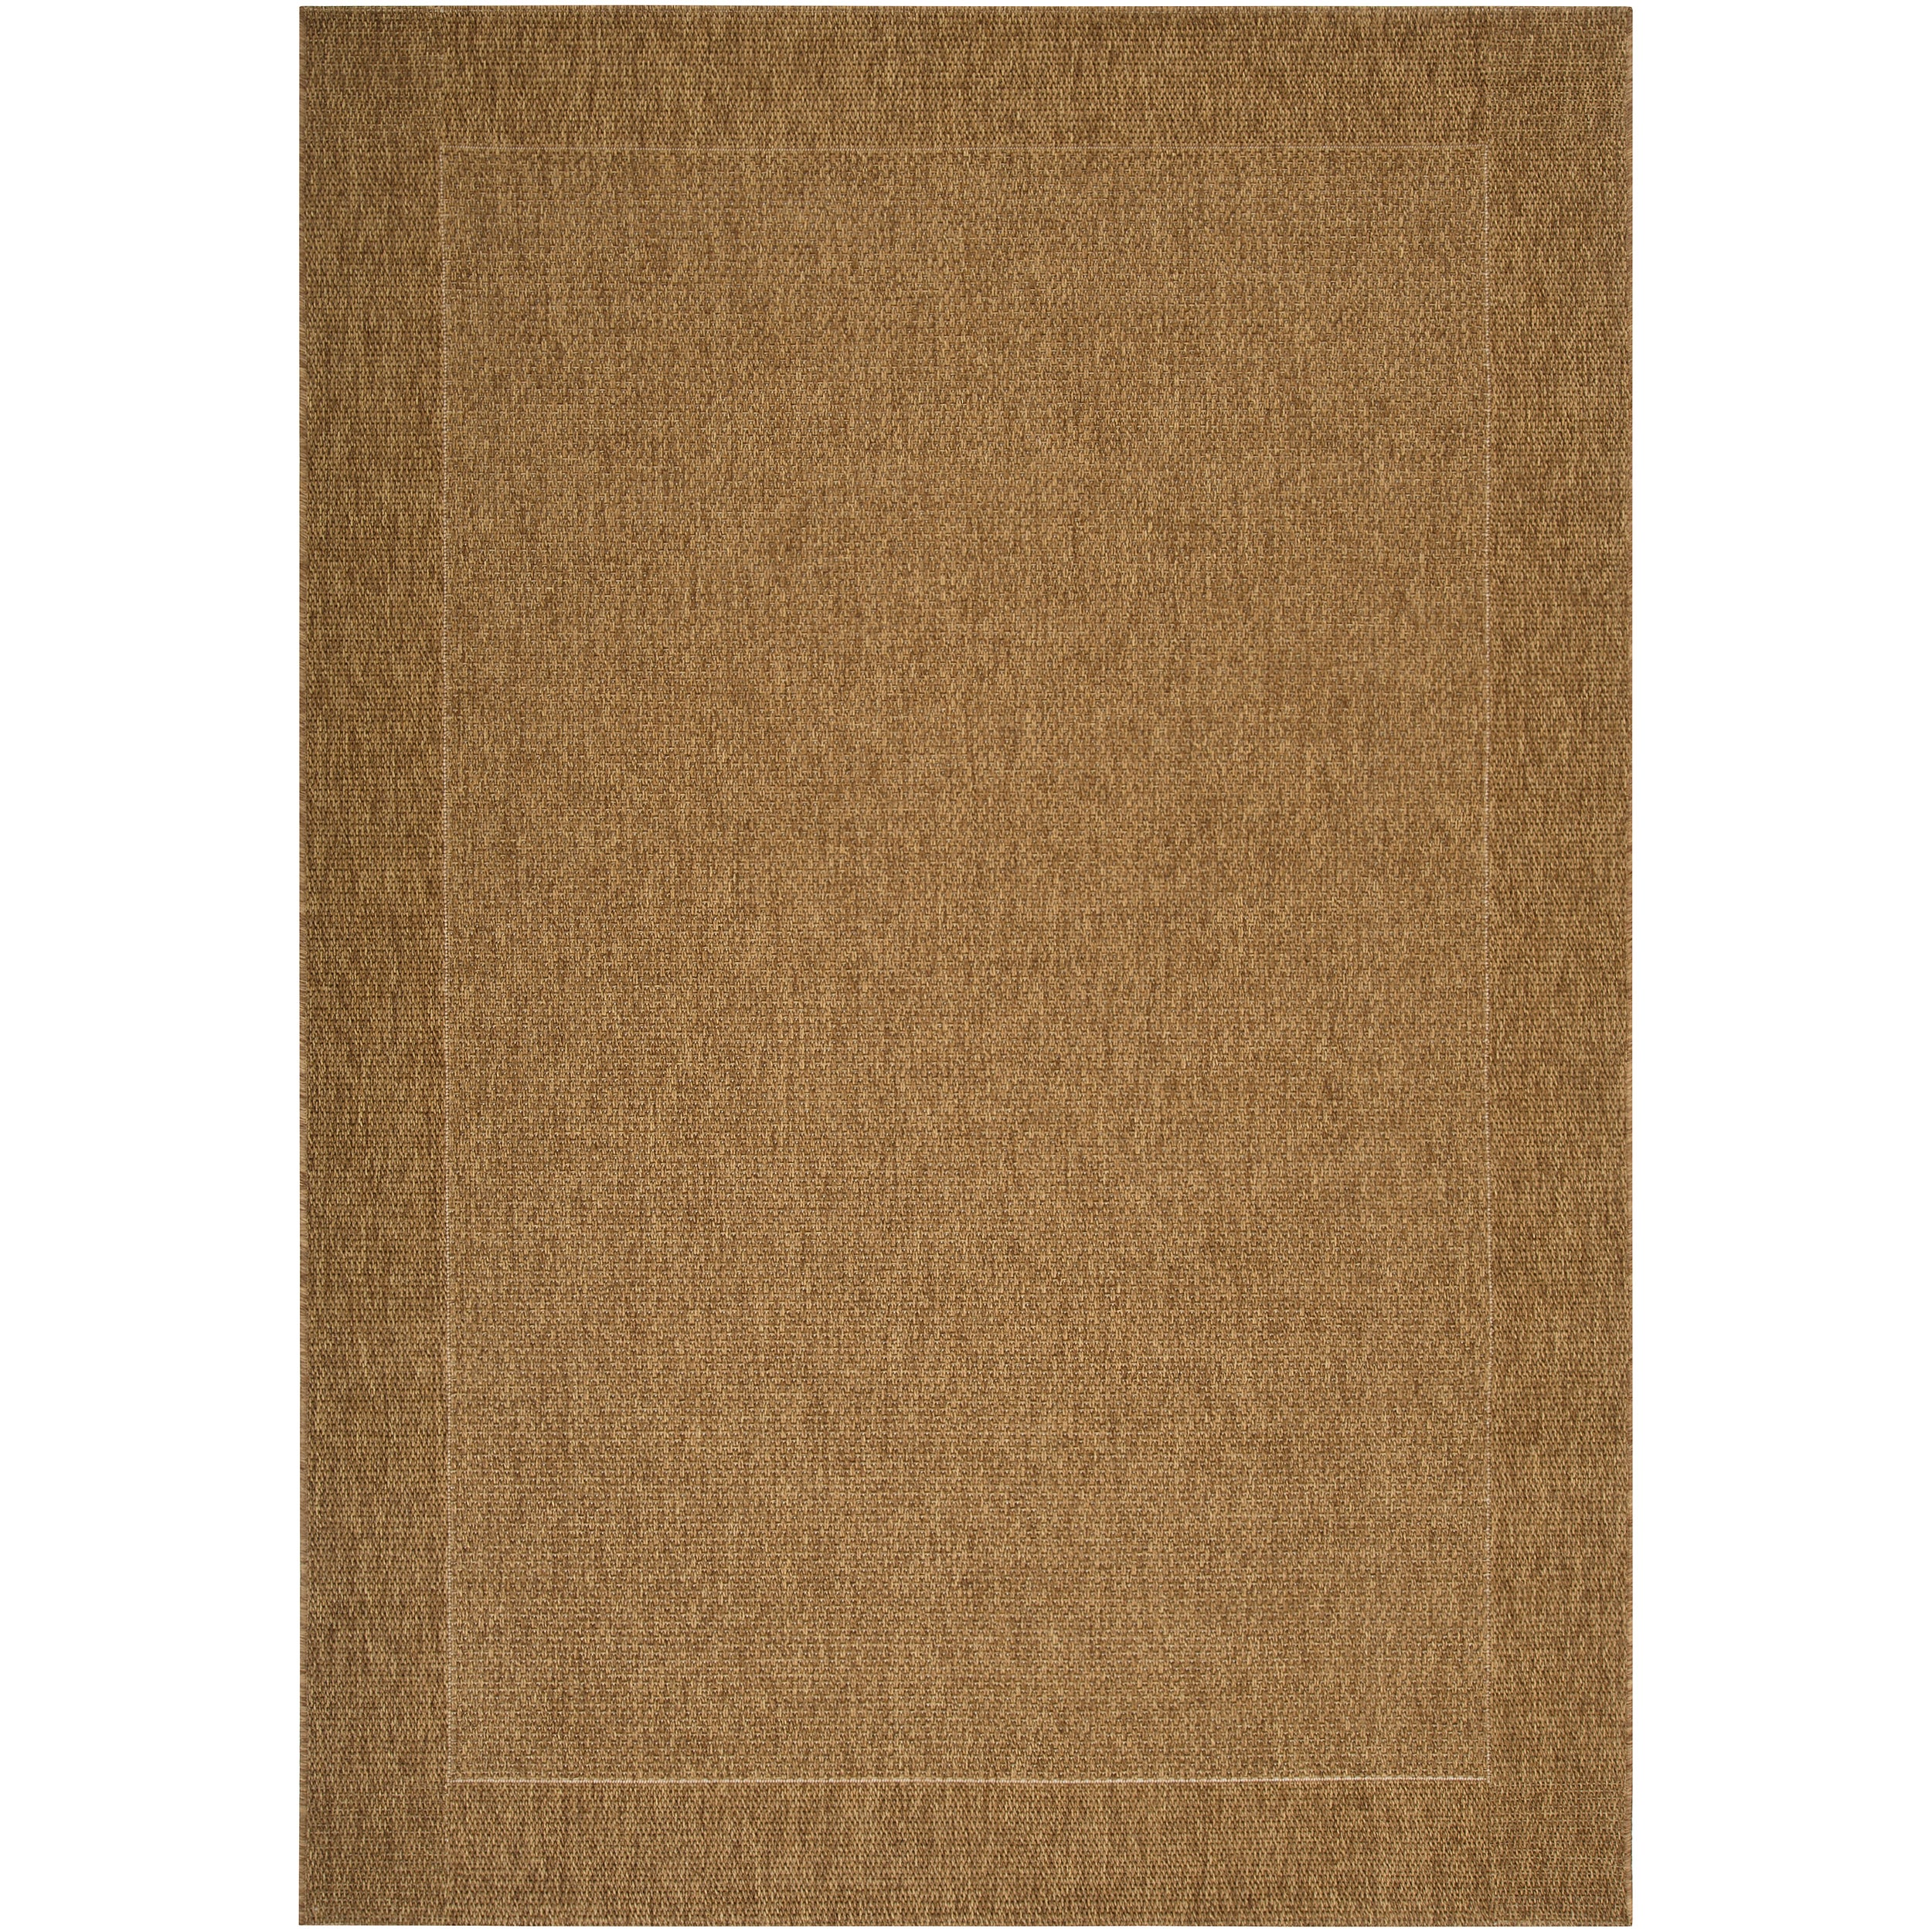 Woven Tan Indoor Outdoor Border Rug 3 11 x 5 7